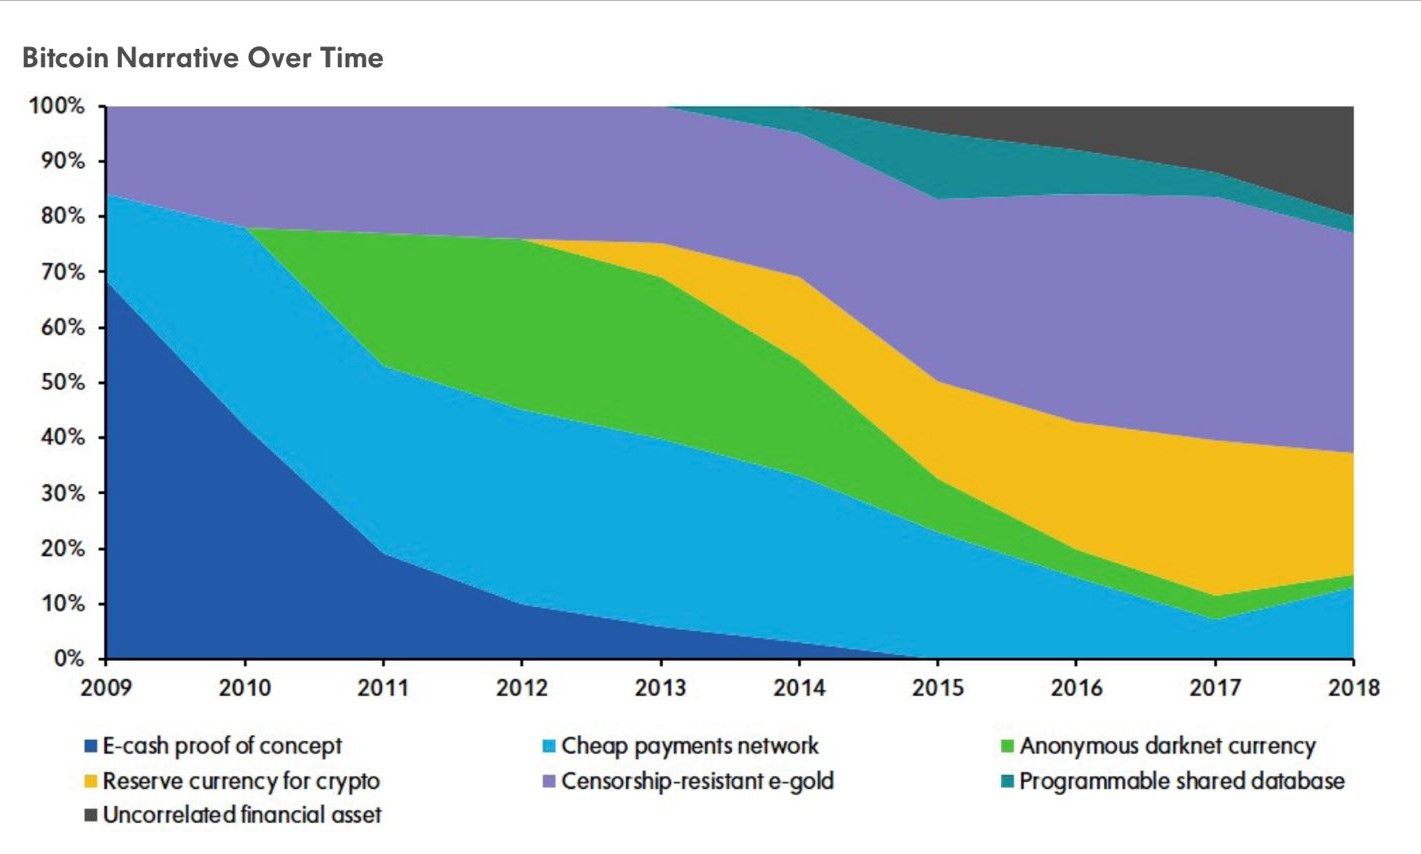 Bitcoin narrative over time: the story changes!